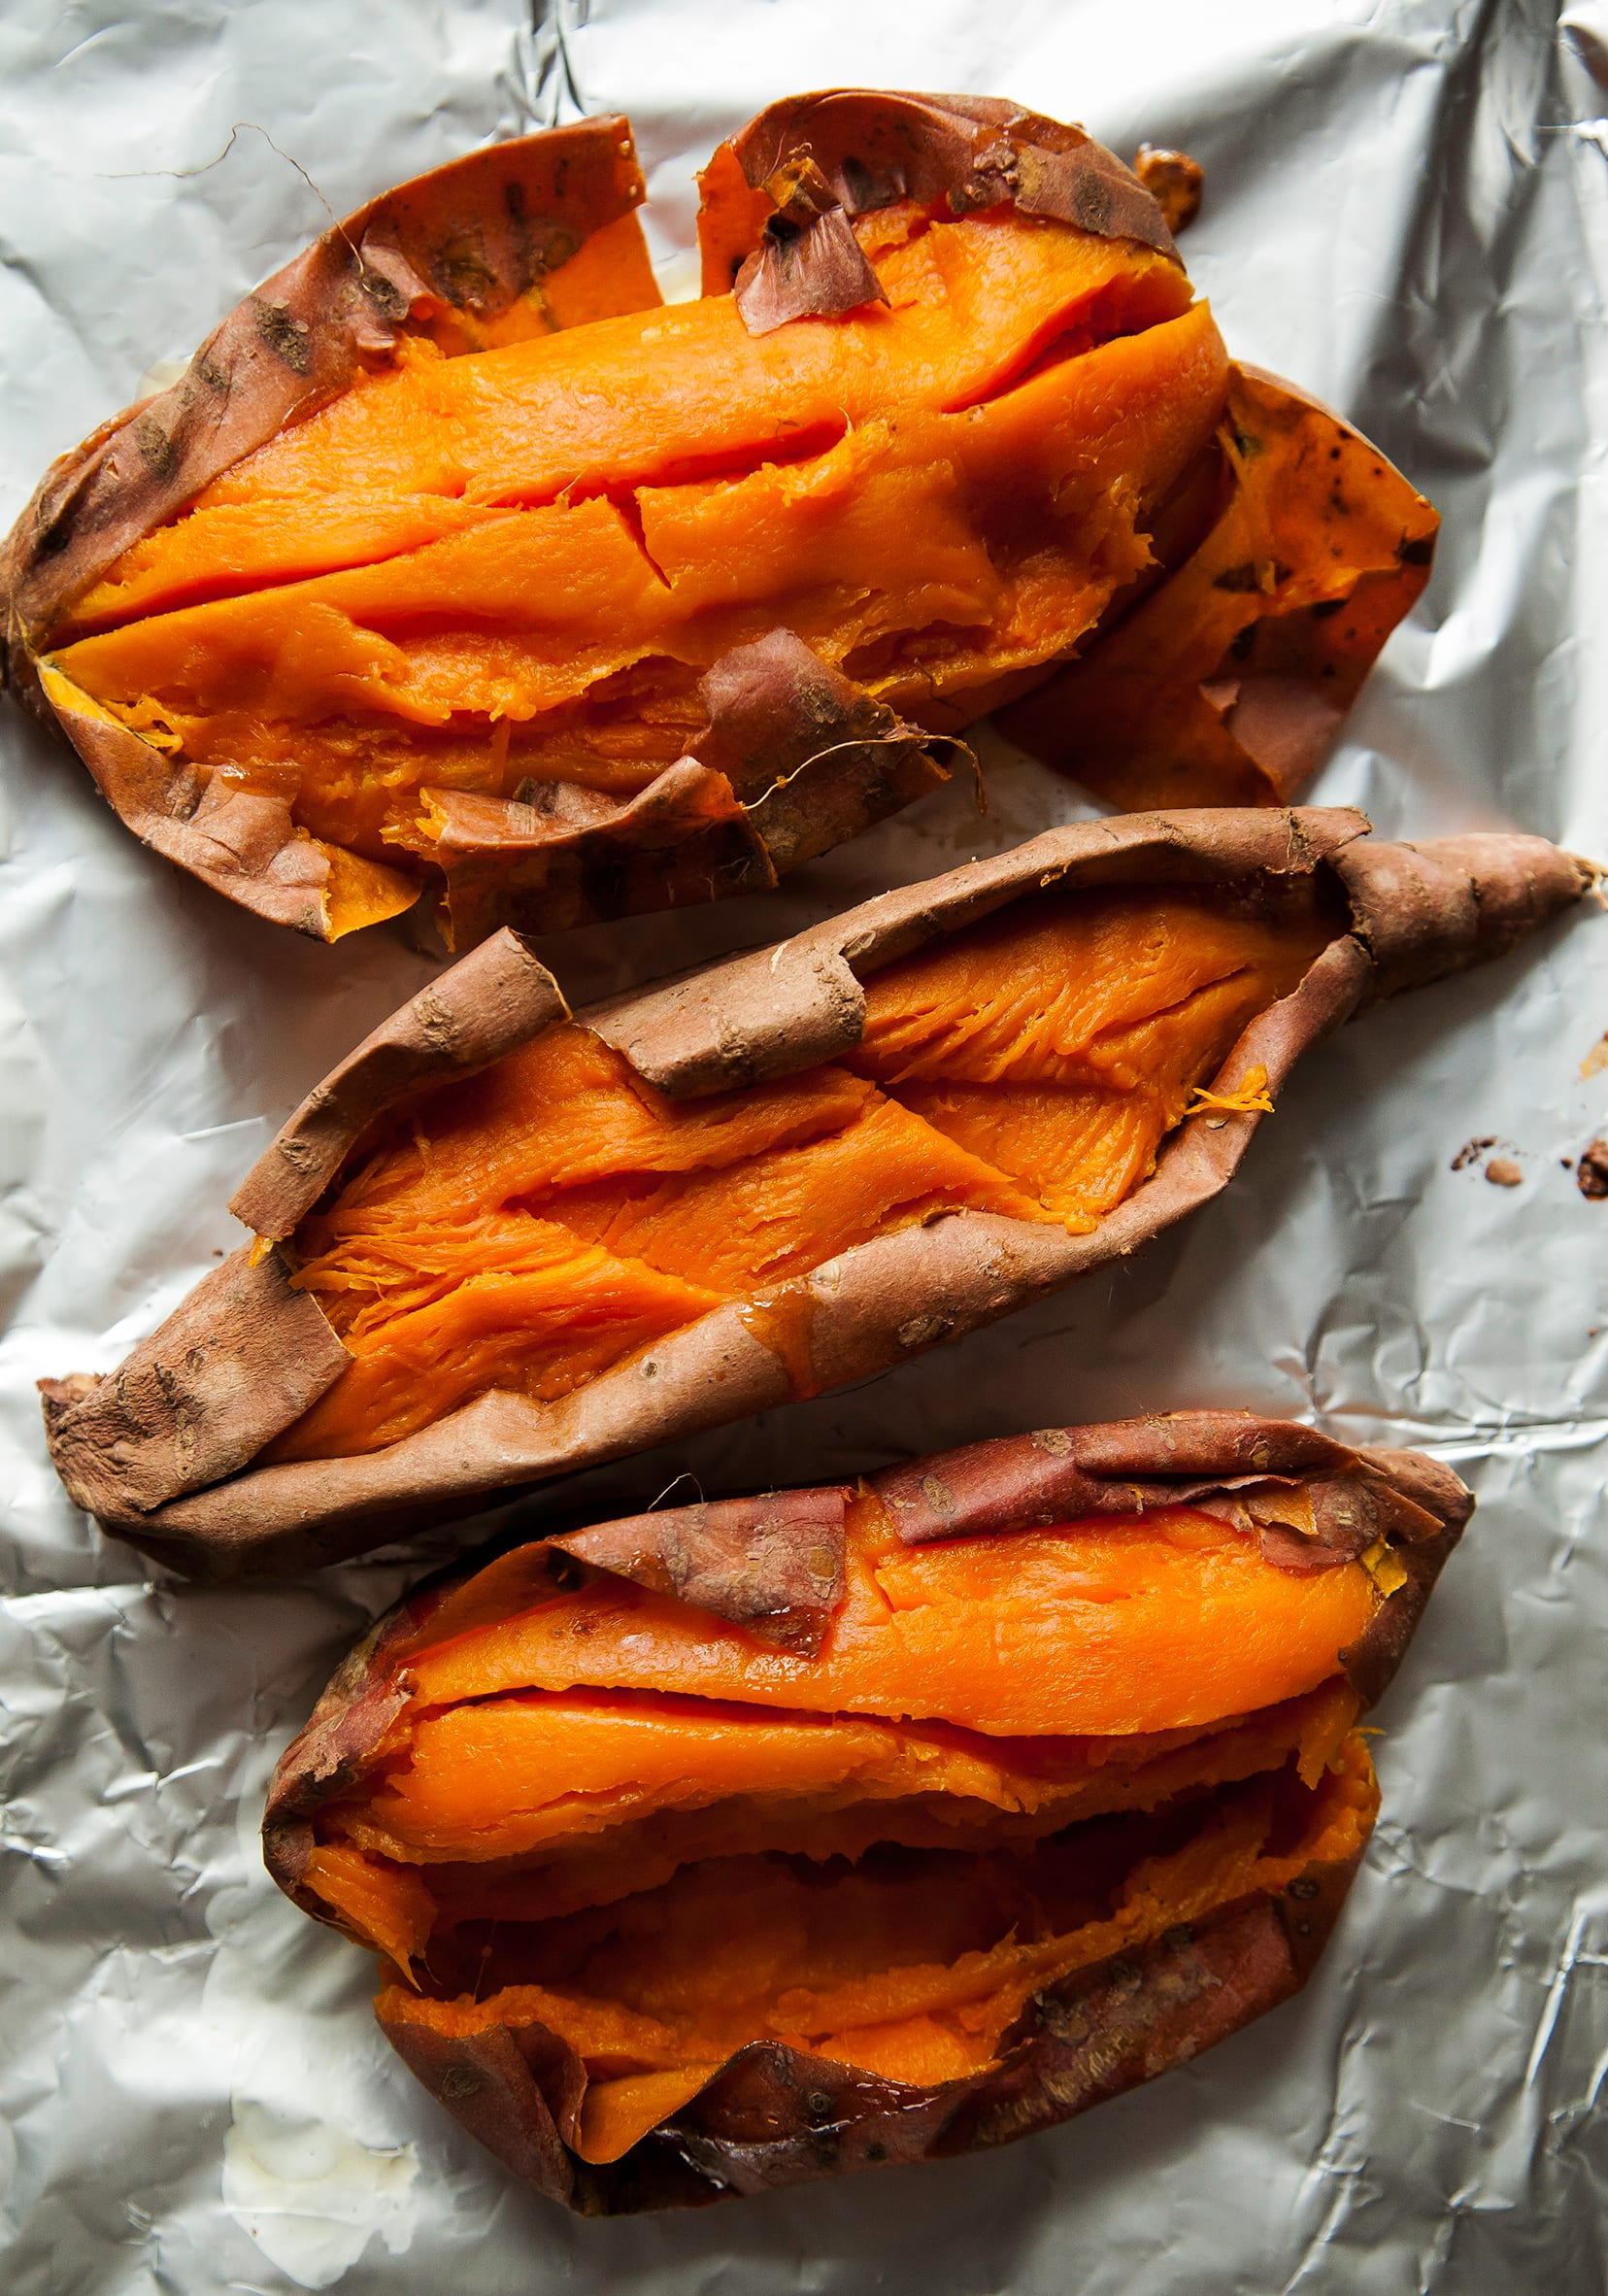 An overhead shot of roasted and split open sweet potatoes on top of foil.